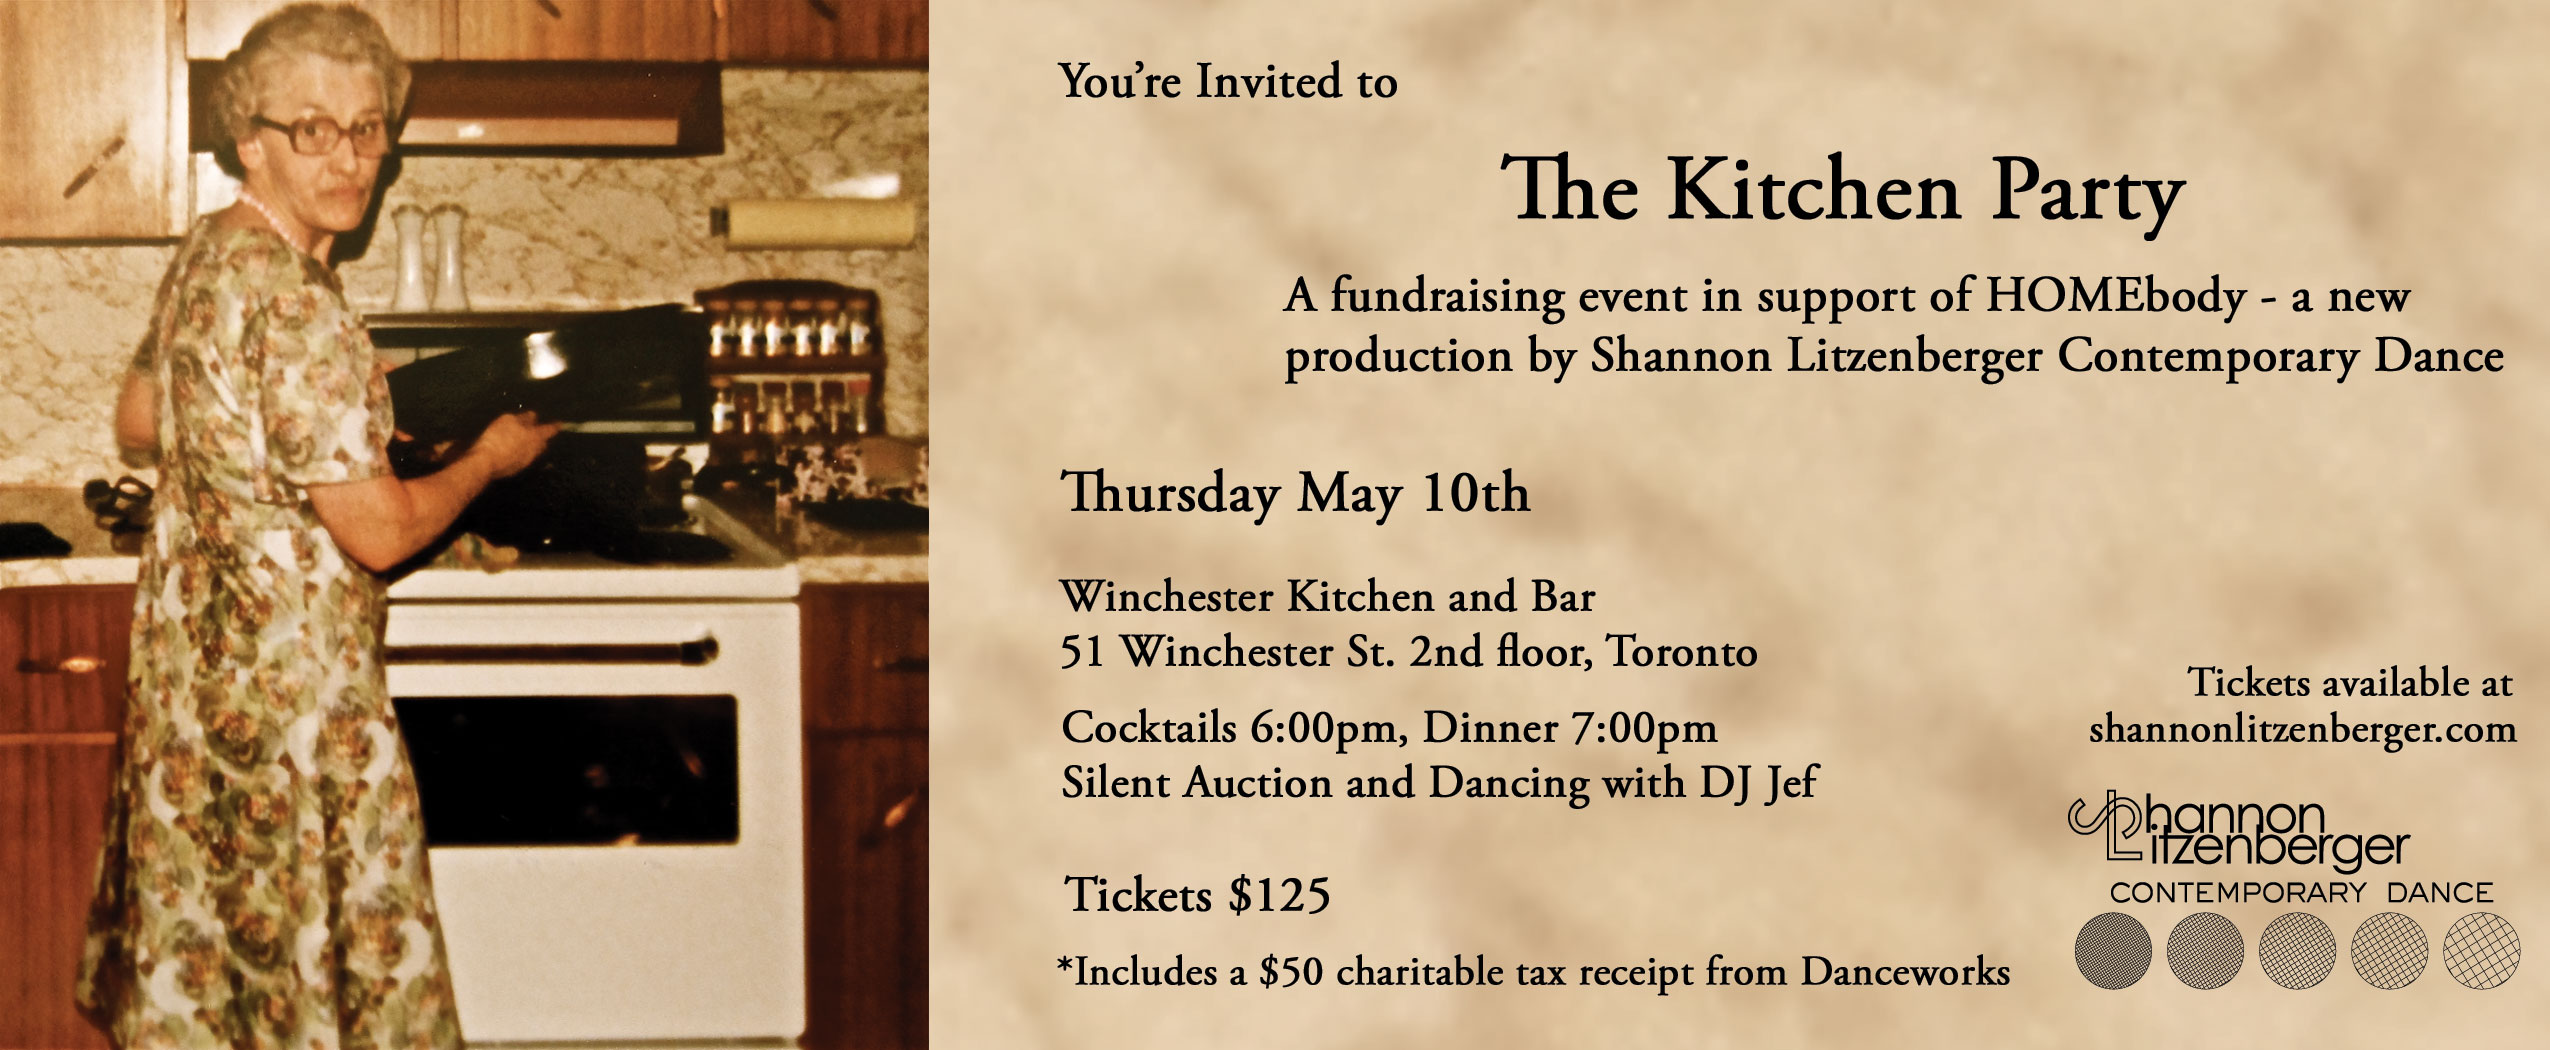 kitchen party invitation cards design. shannon litzenberger  kitchen party HOMEbody dance toronto May 10 2012 The Kitchen Party Lindsay Zier Vogel